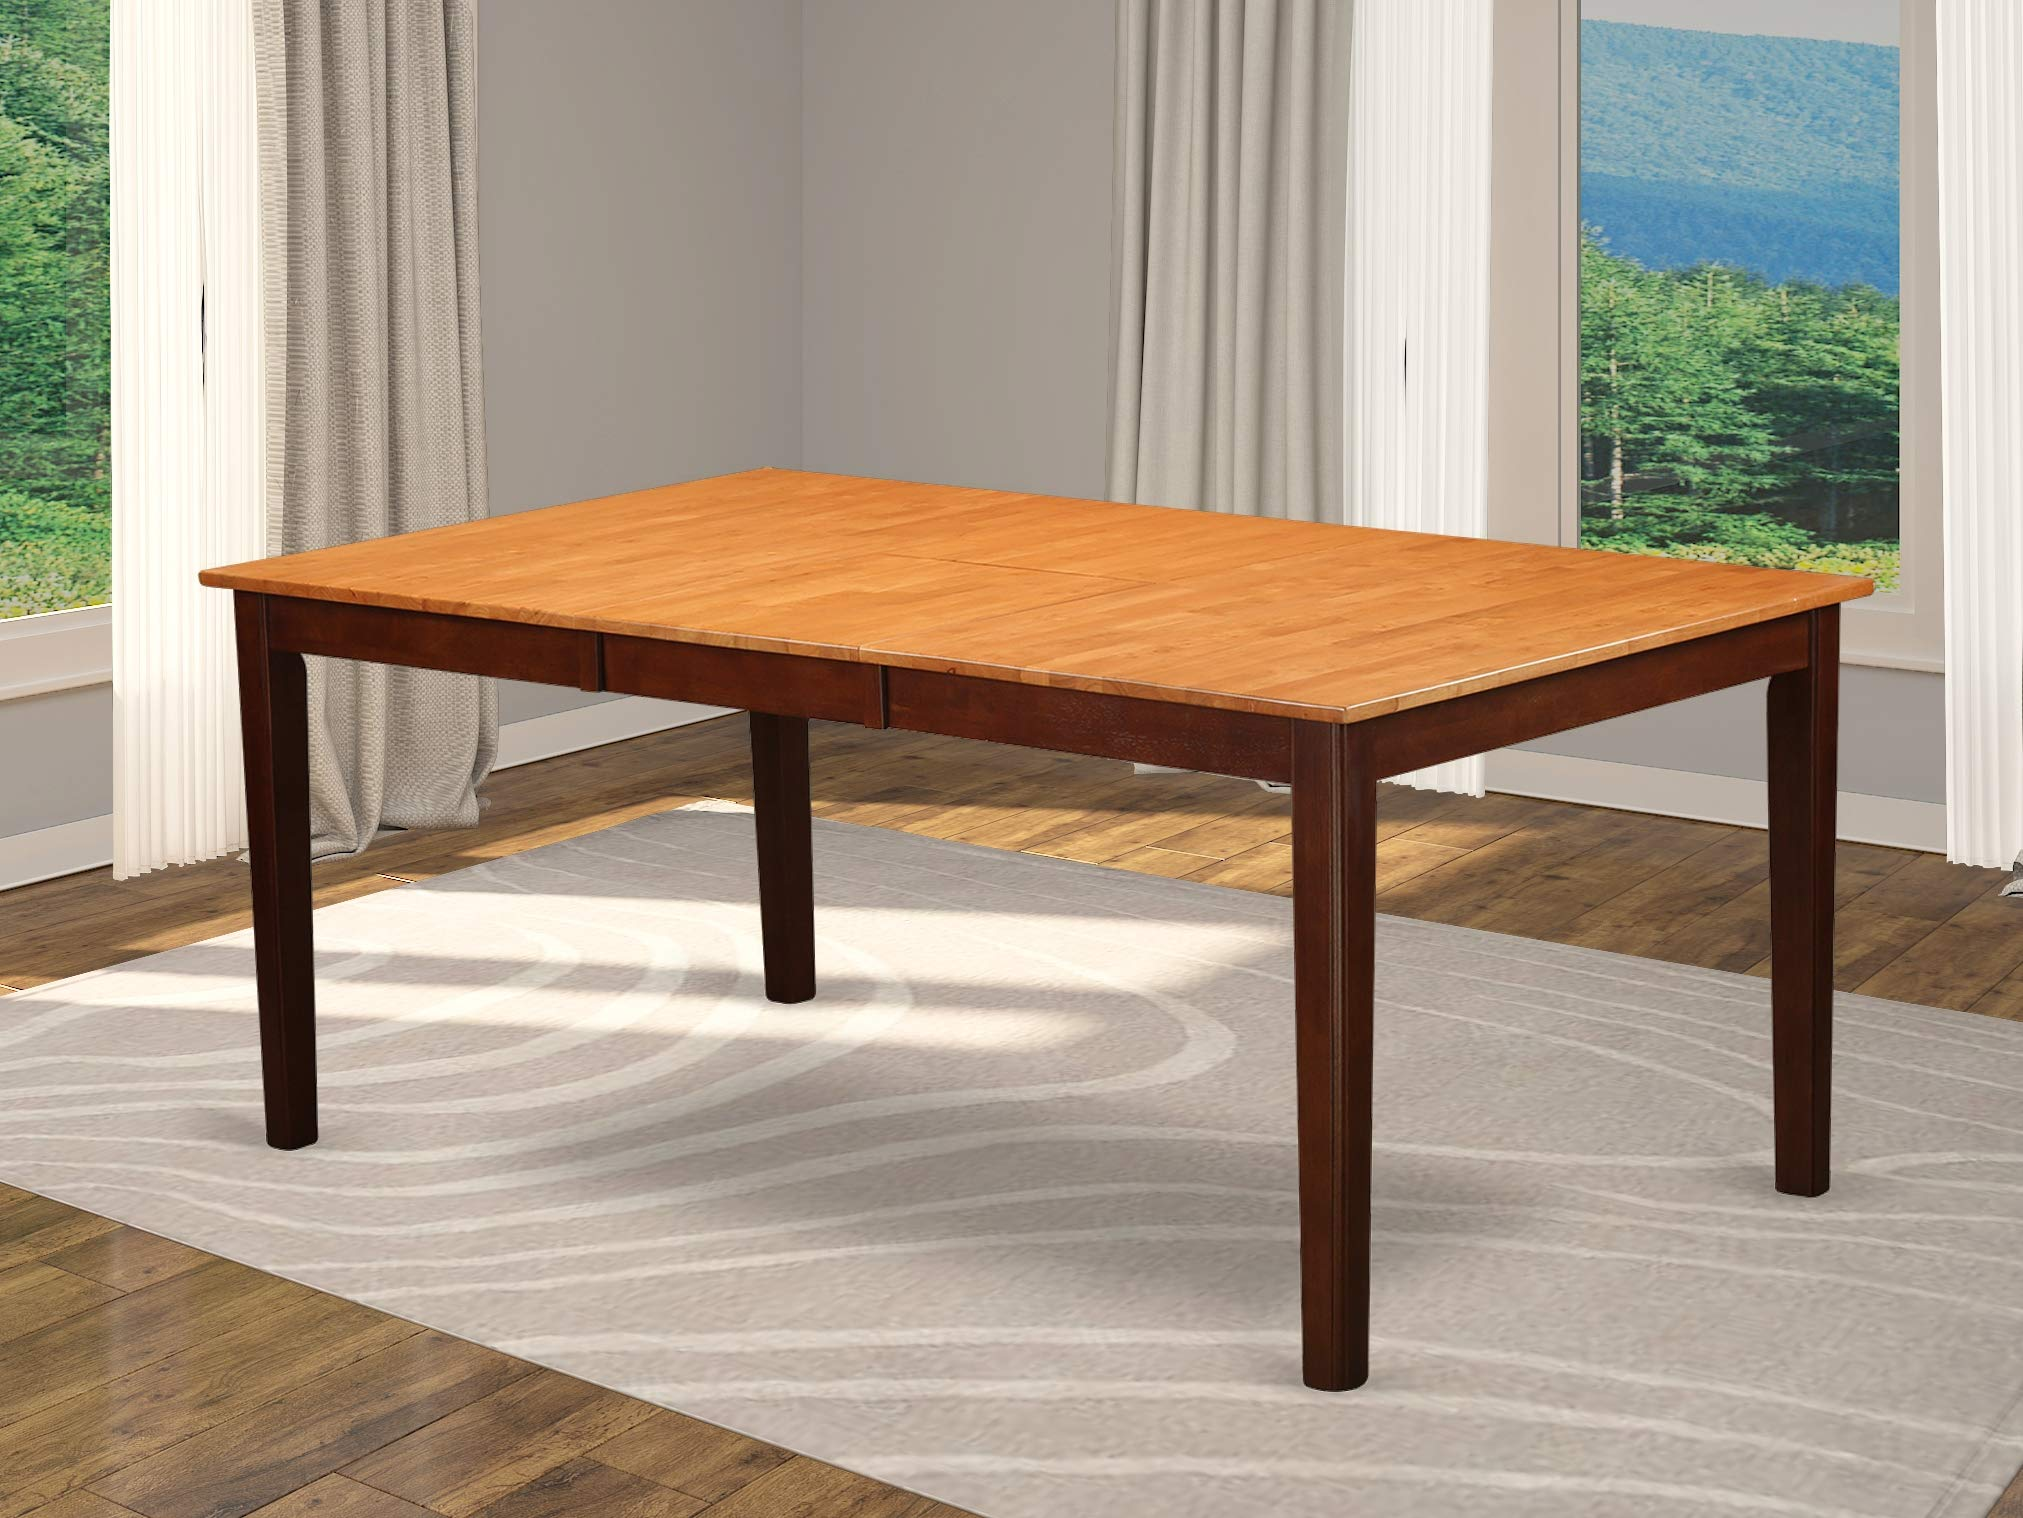 East West Furniture HET-CAP-T Rectangular Dining Room Table with 18-Inch Butterfly Leaf by East West Furniture